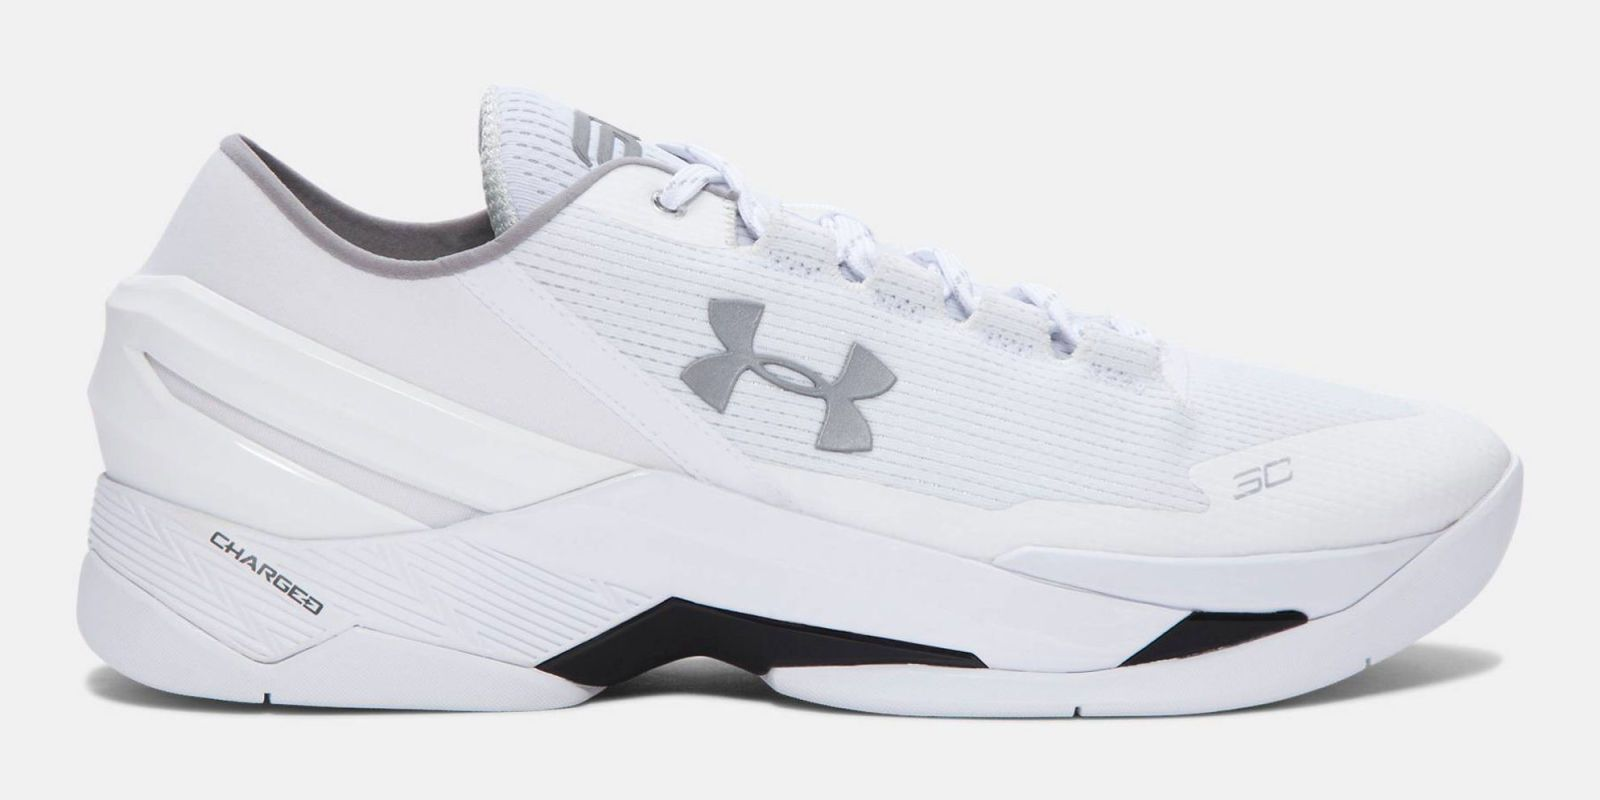 Under Armour Steph Curry 2 Low 'Chef